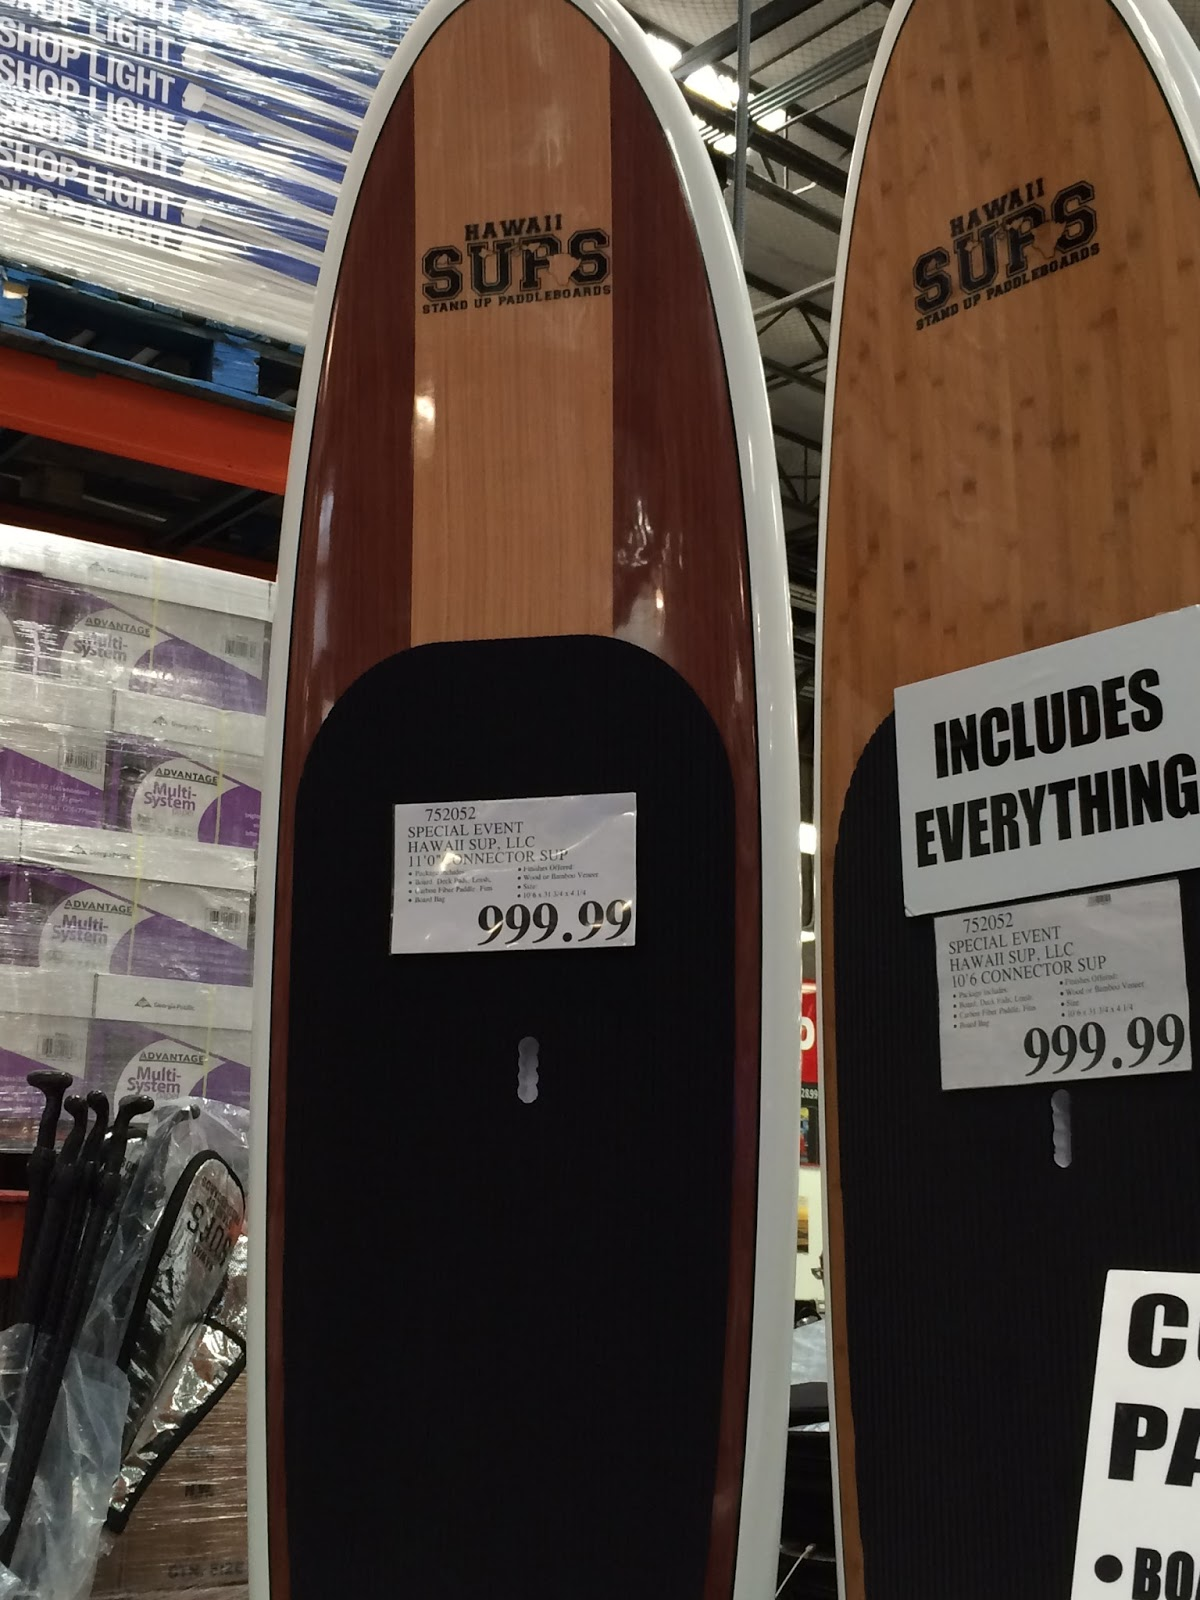 Hawaii Sups Connector Stand Up Paddleboard Costco Weekender